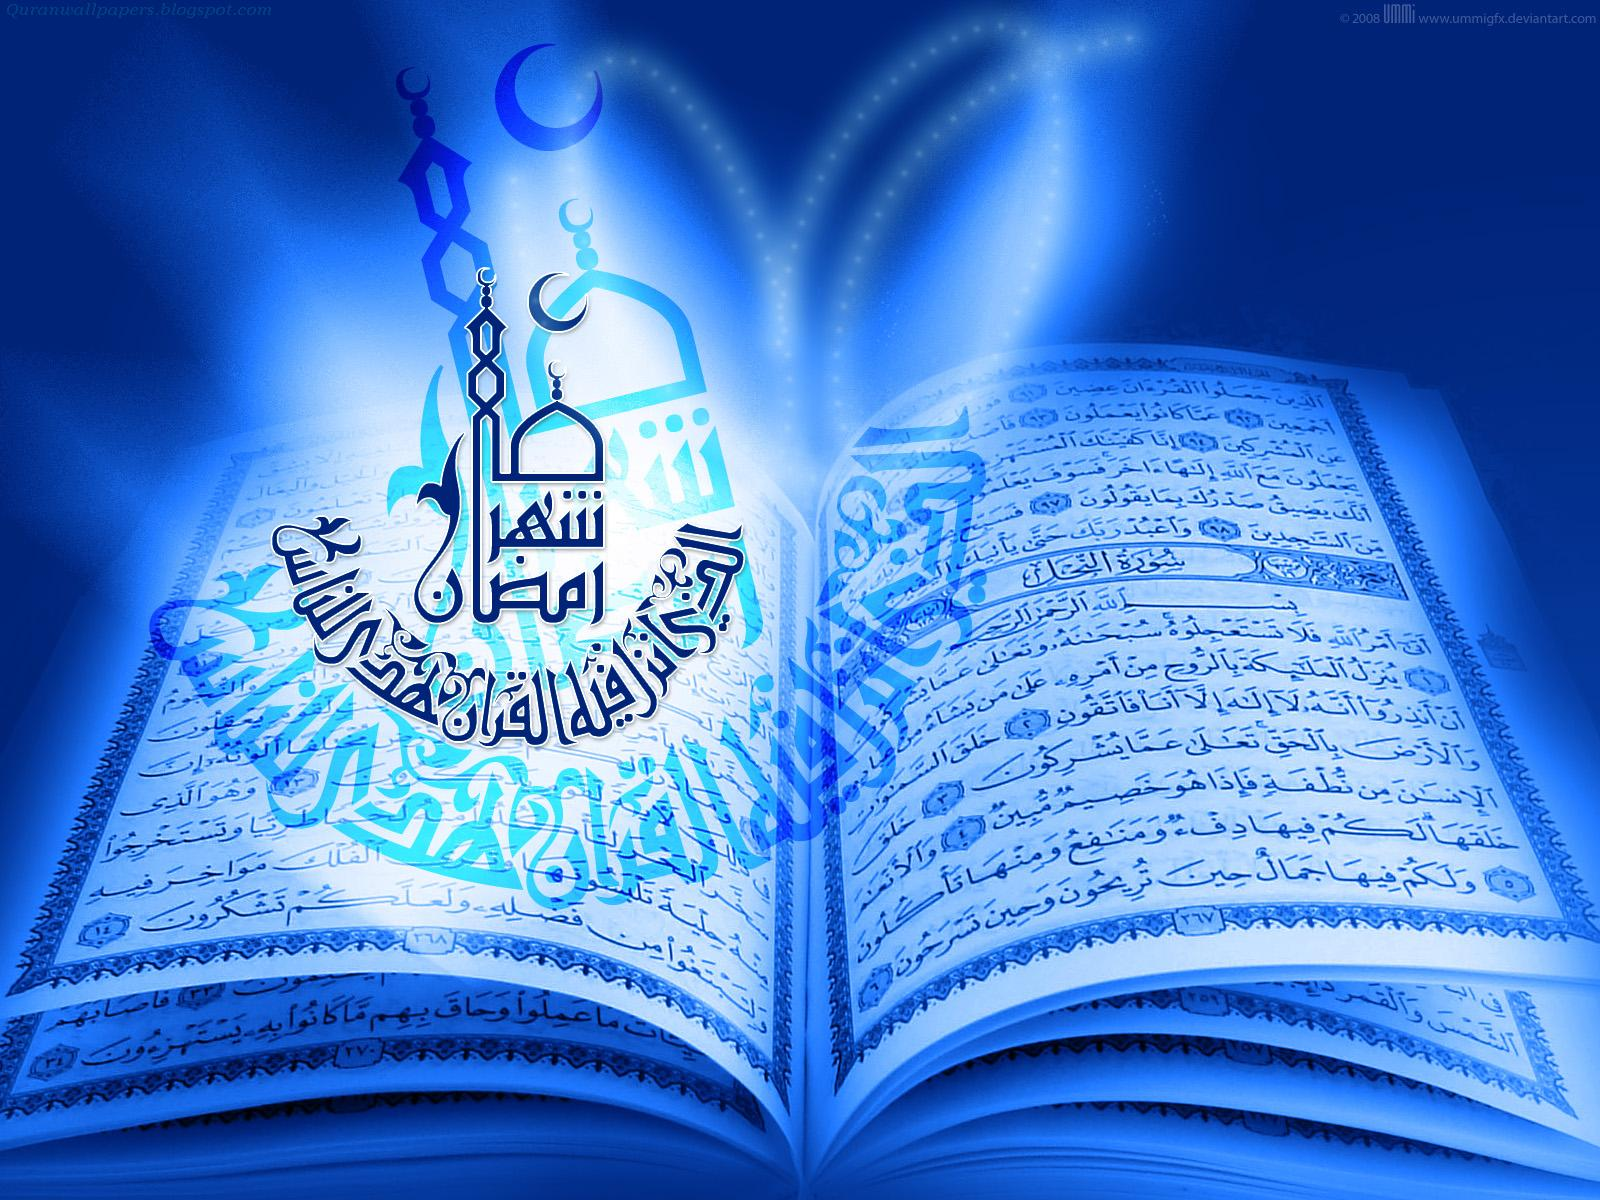 Islam and our life quran wallpaper islamicwallpaper - Islamic background wallpaper ...